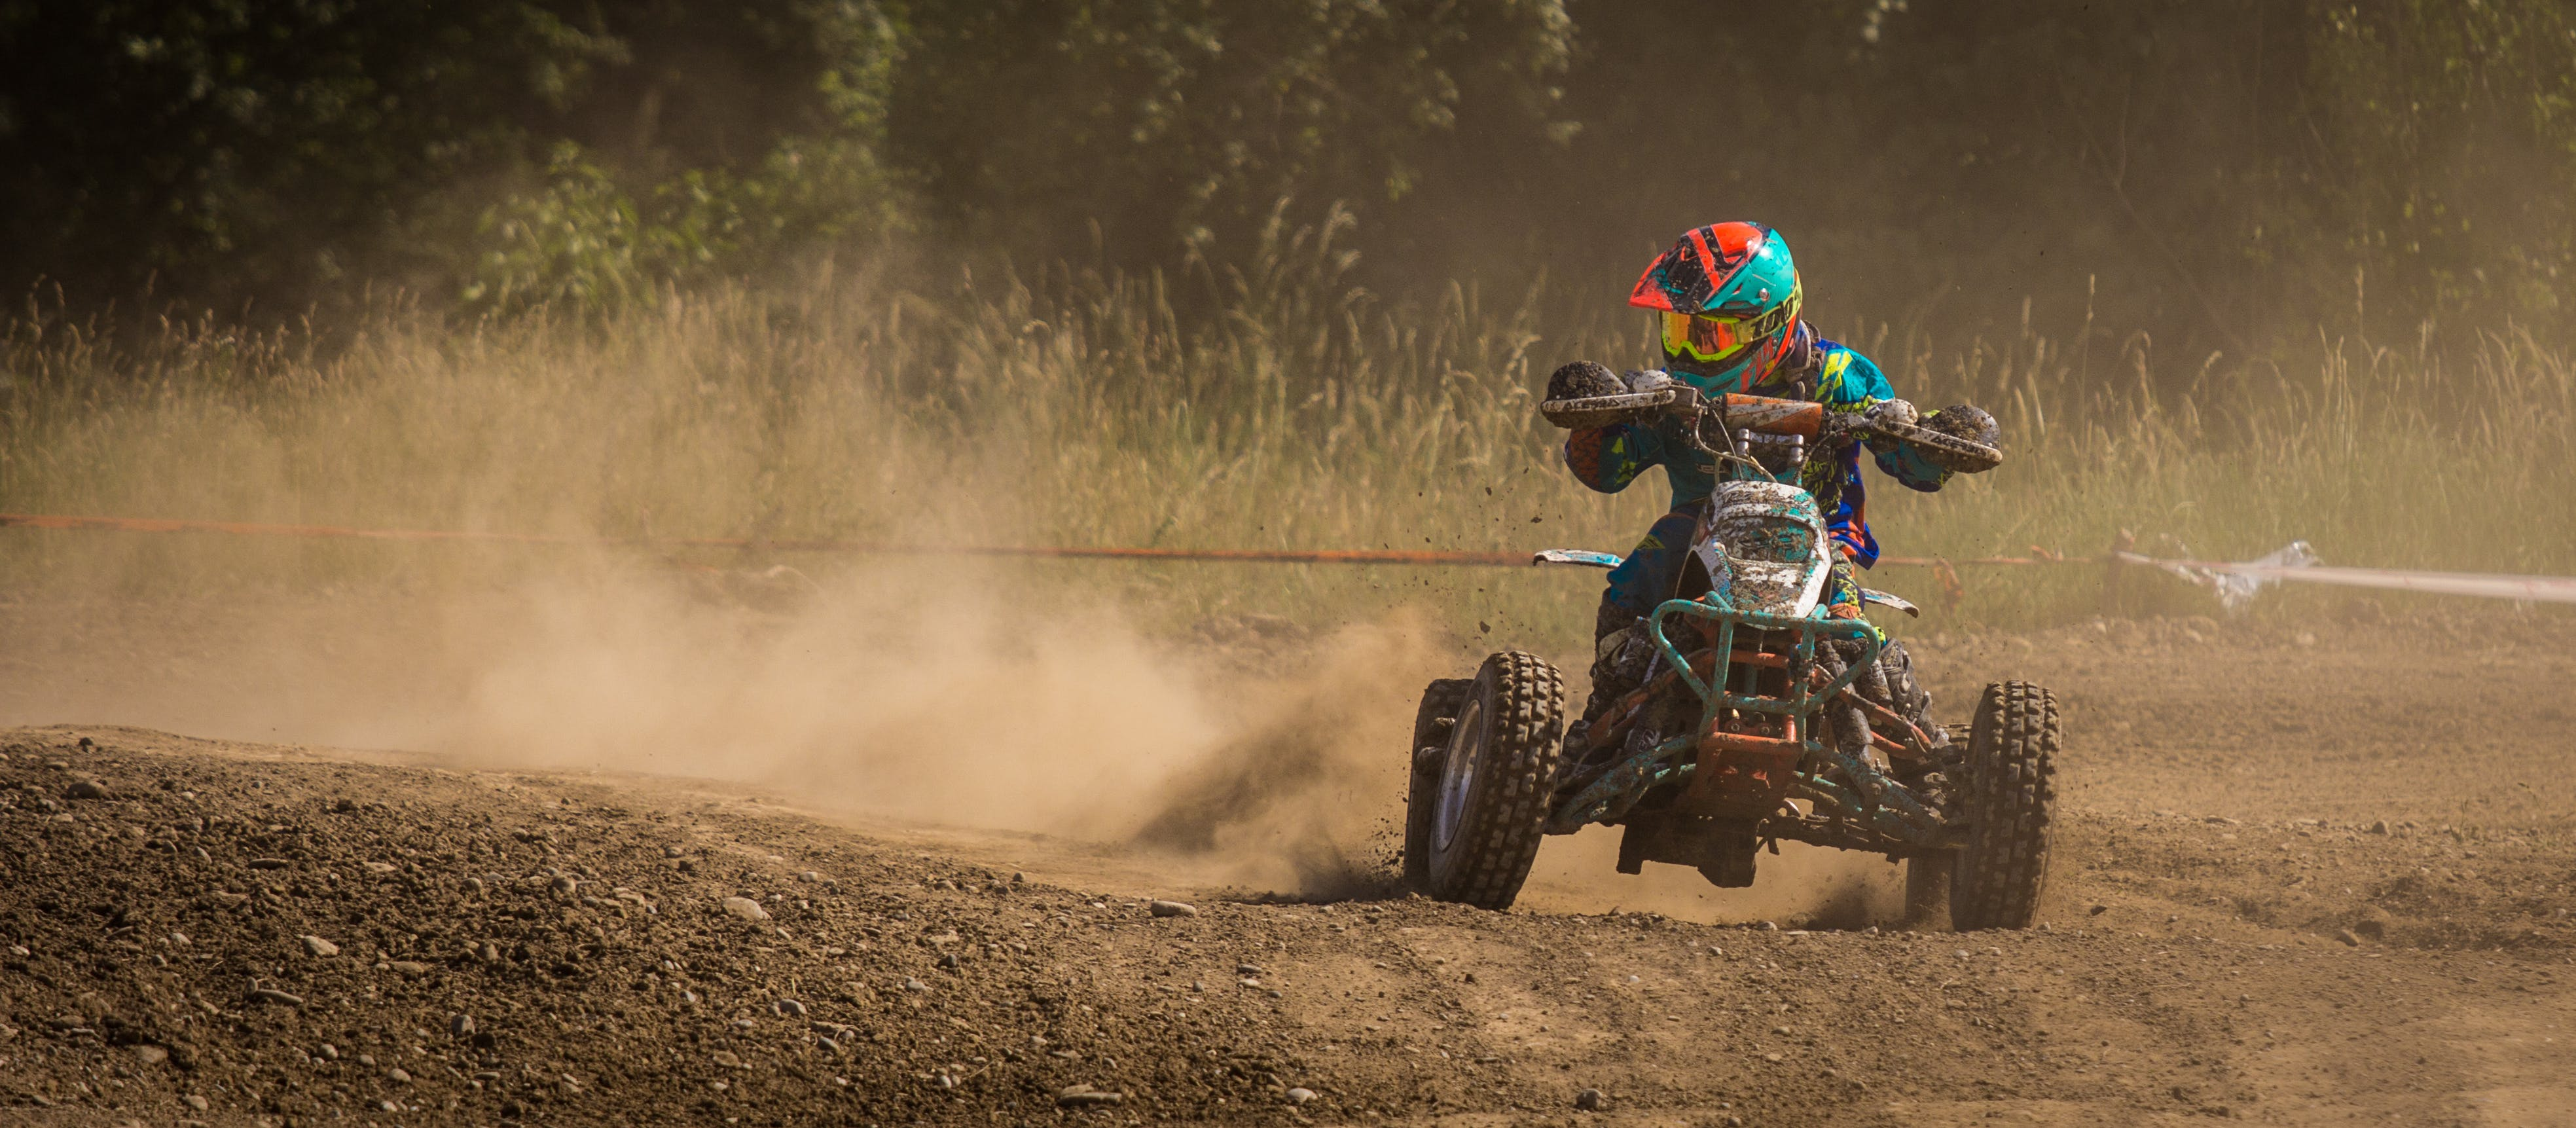 Man Riding Atv on Race Track